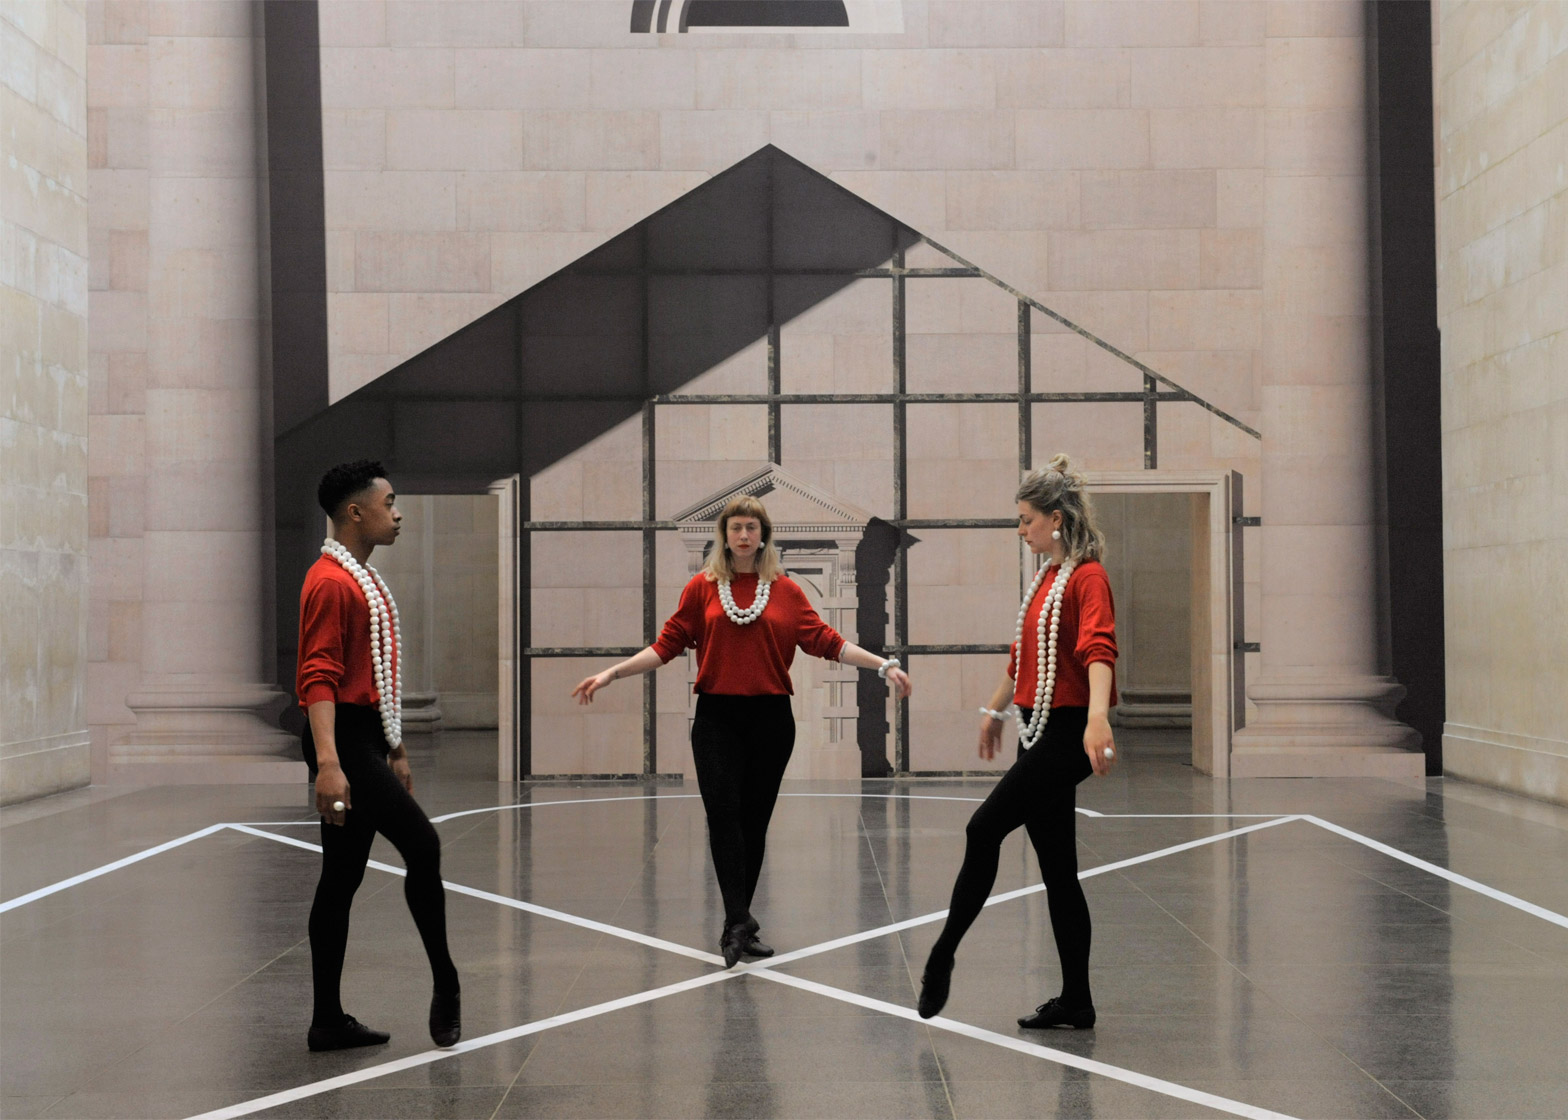 historical-dances-in-an-antique-setting-pablo-bronstein-choreography-_dezeen_1568_4